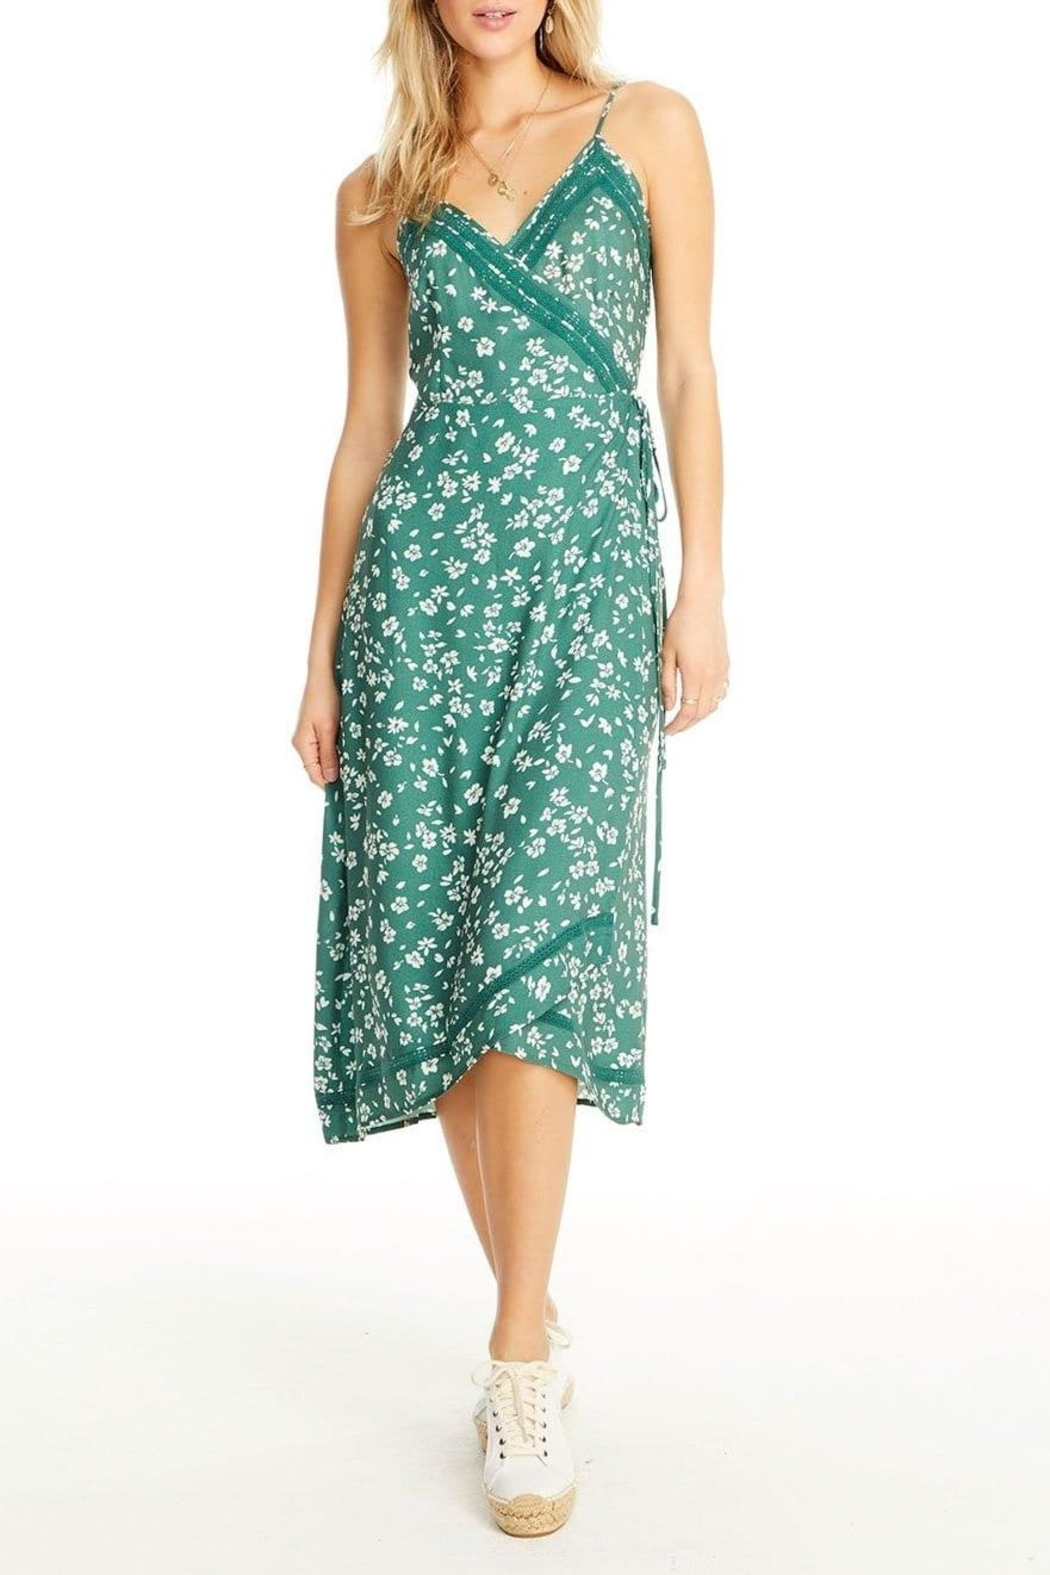 Saltwater Luxe Molly Wrap Dress - Main Image